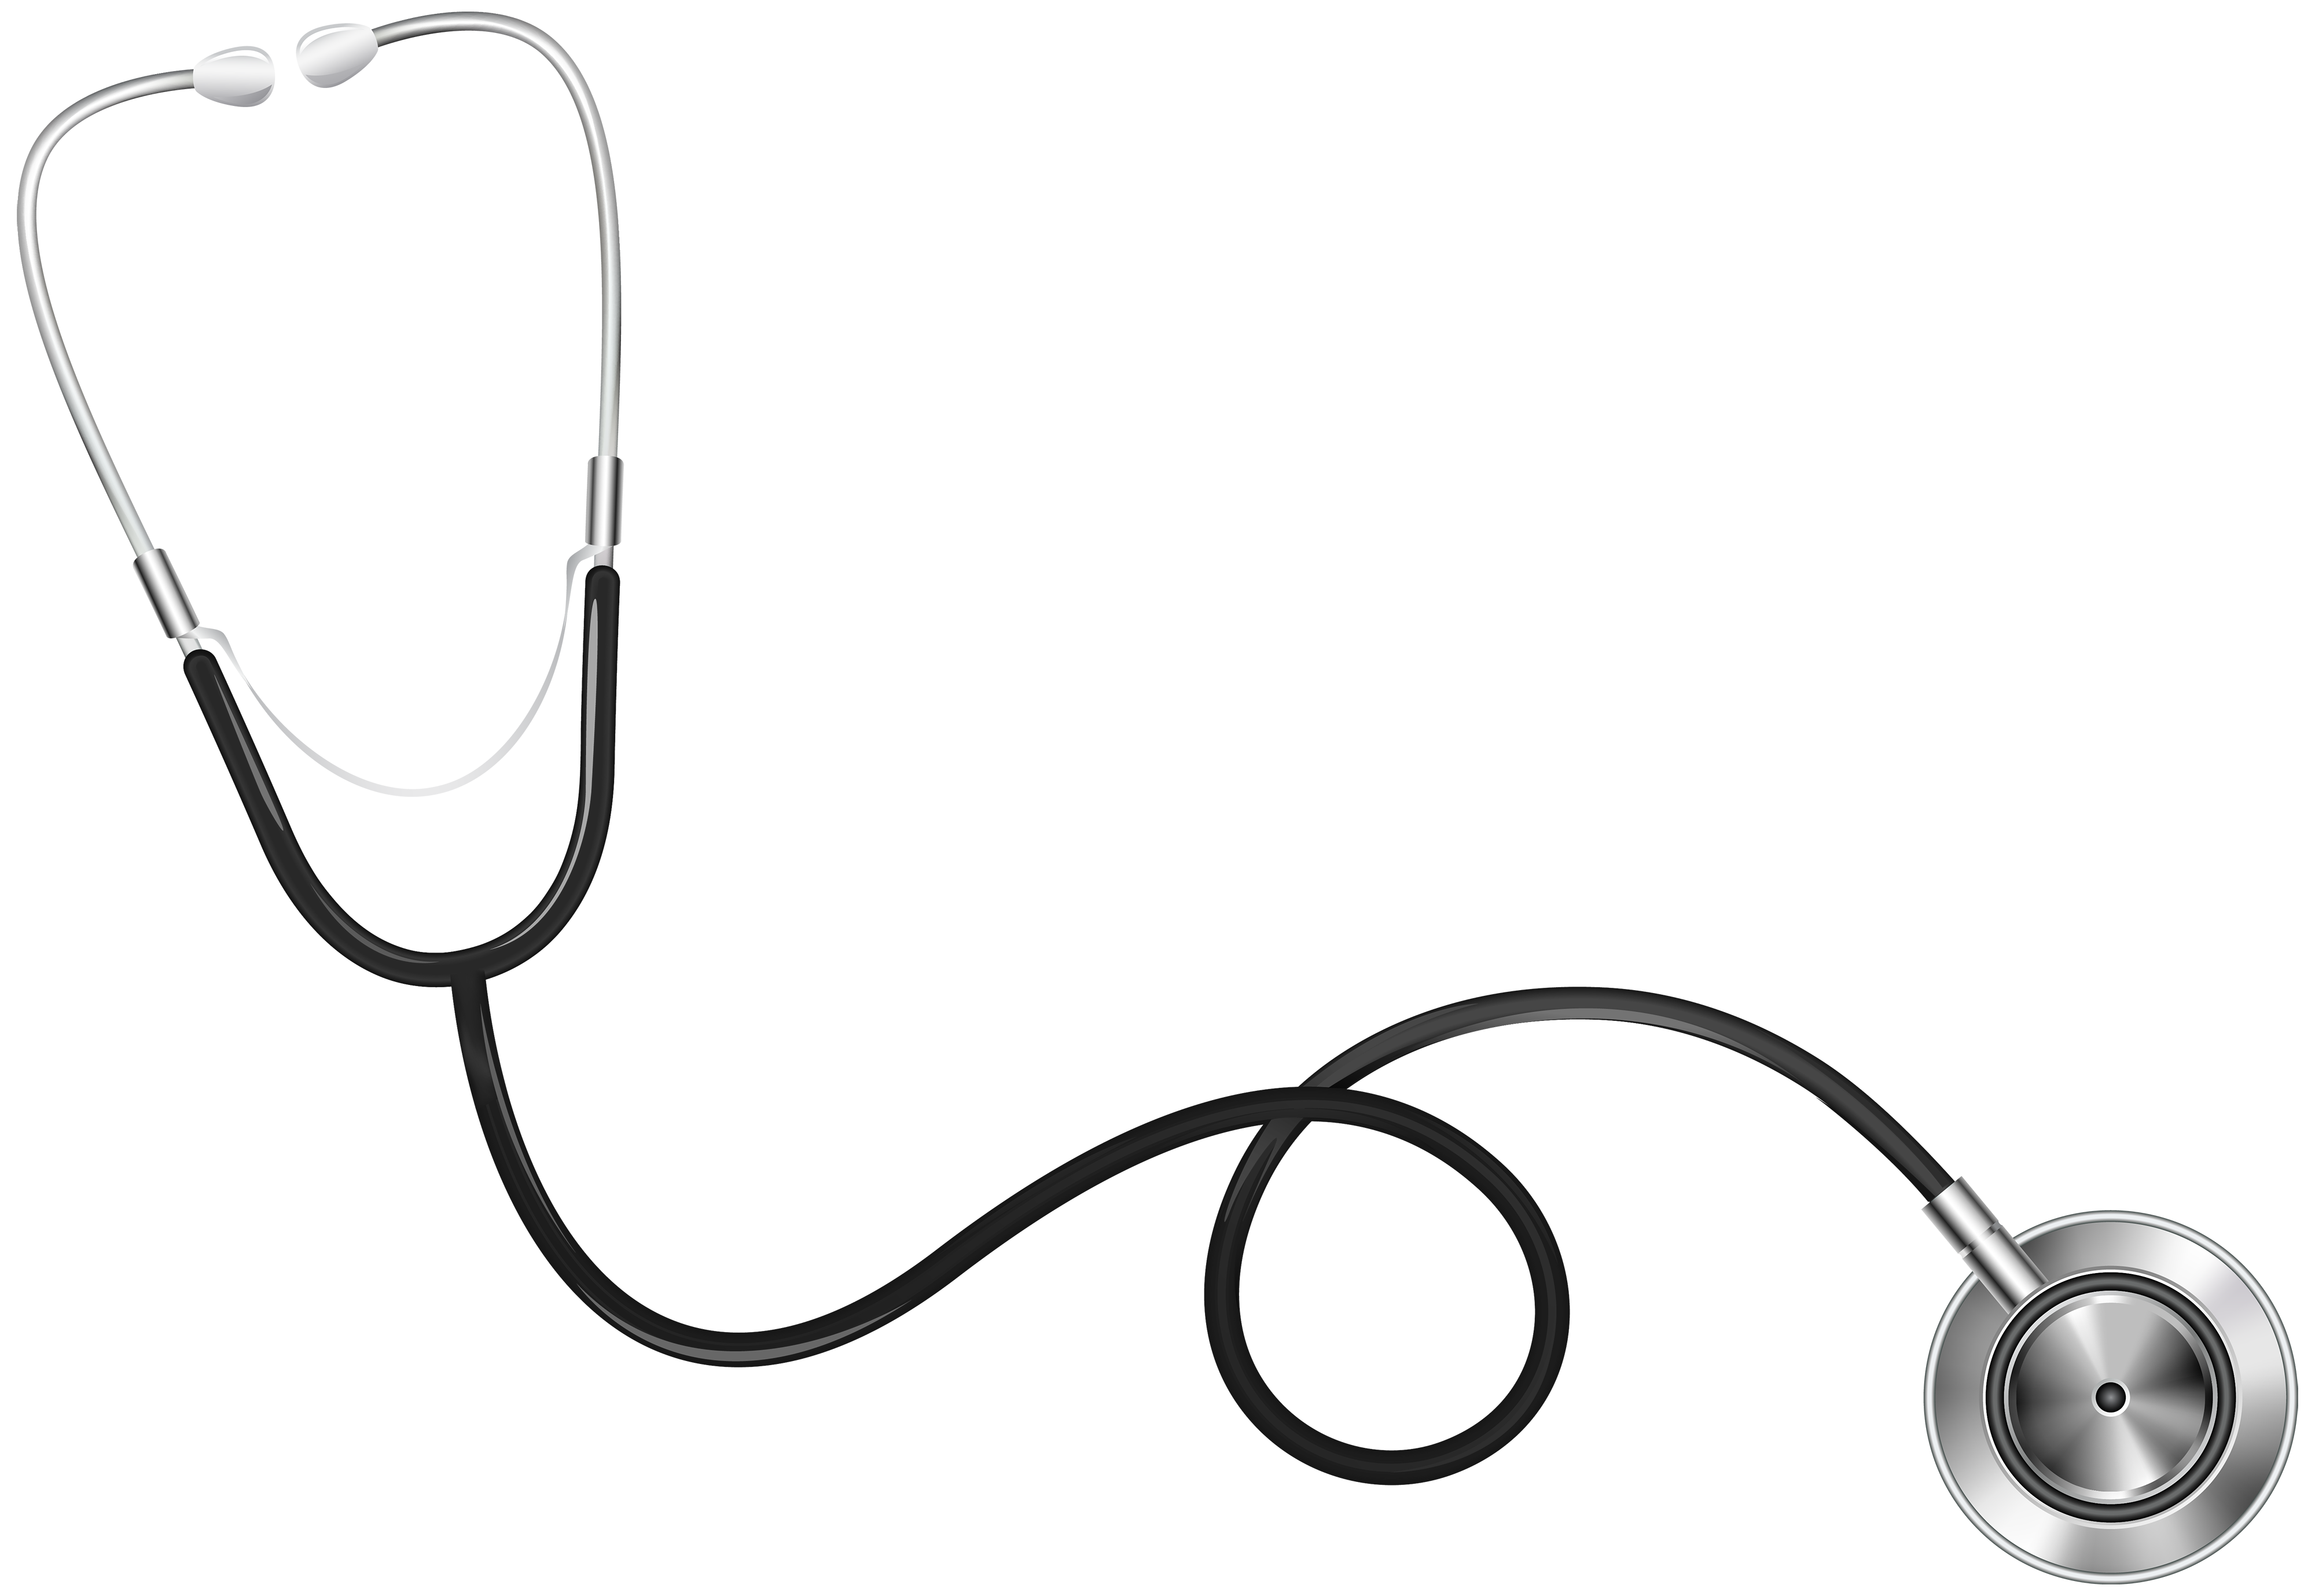 freeuse download Zeus clipart black and white. Stethoscope png fototo me.